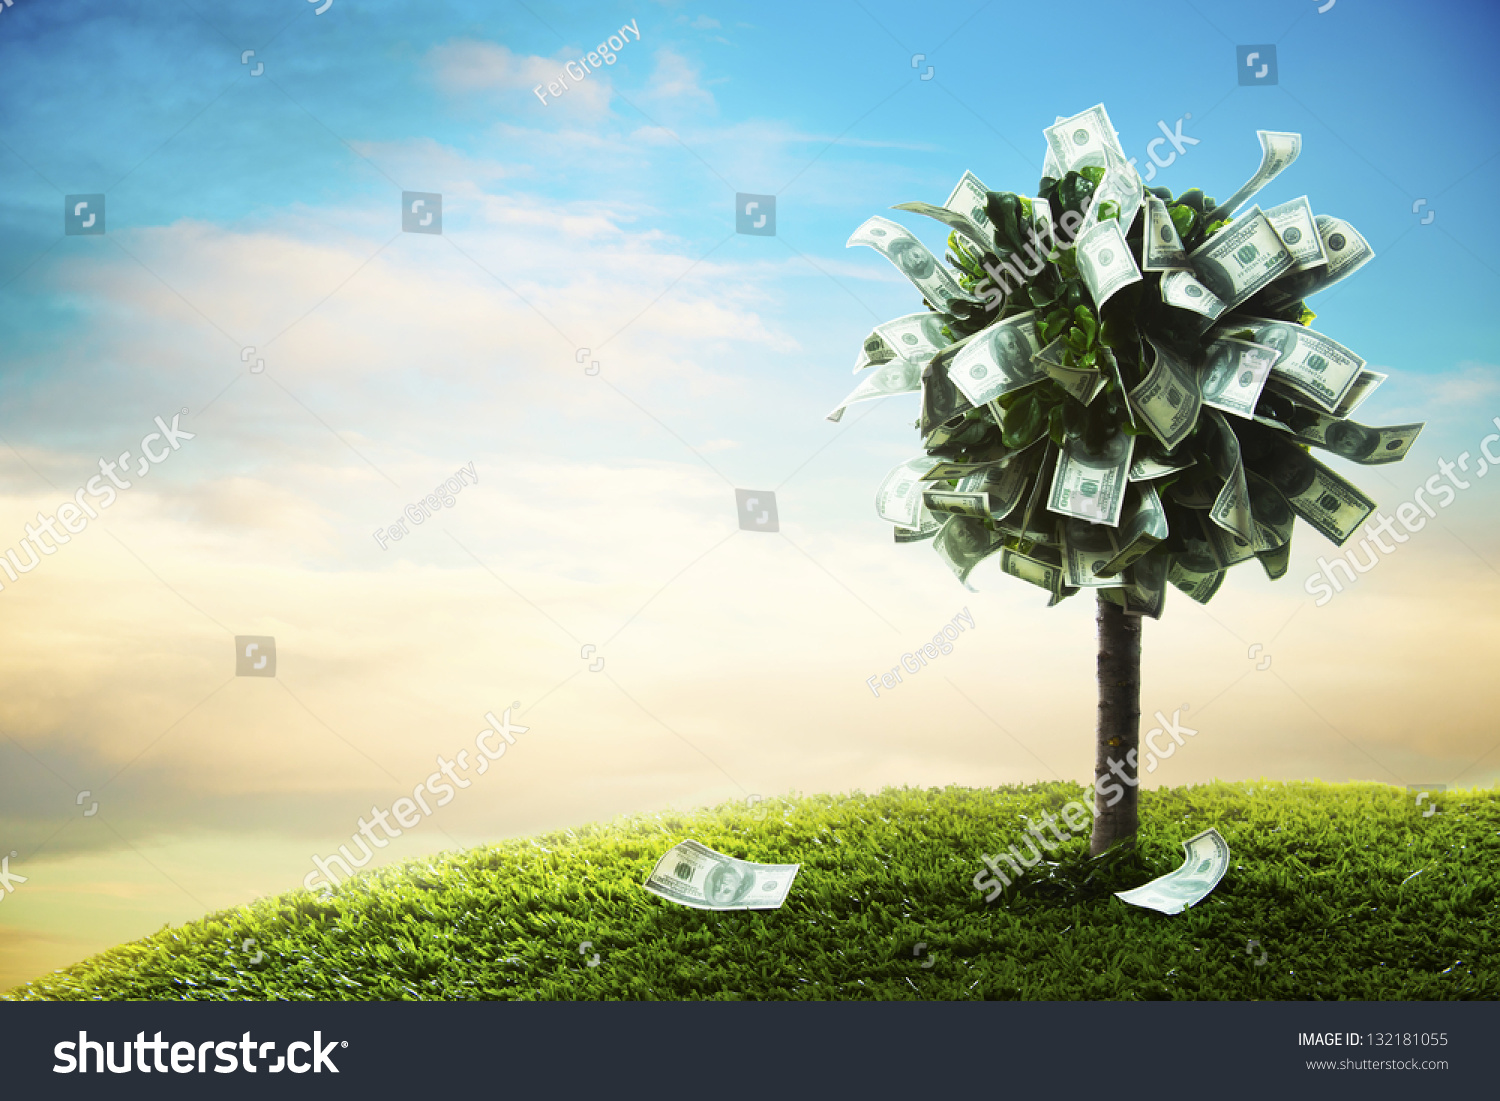 photo of tree made of dollars #132181055